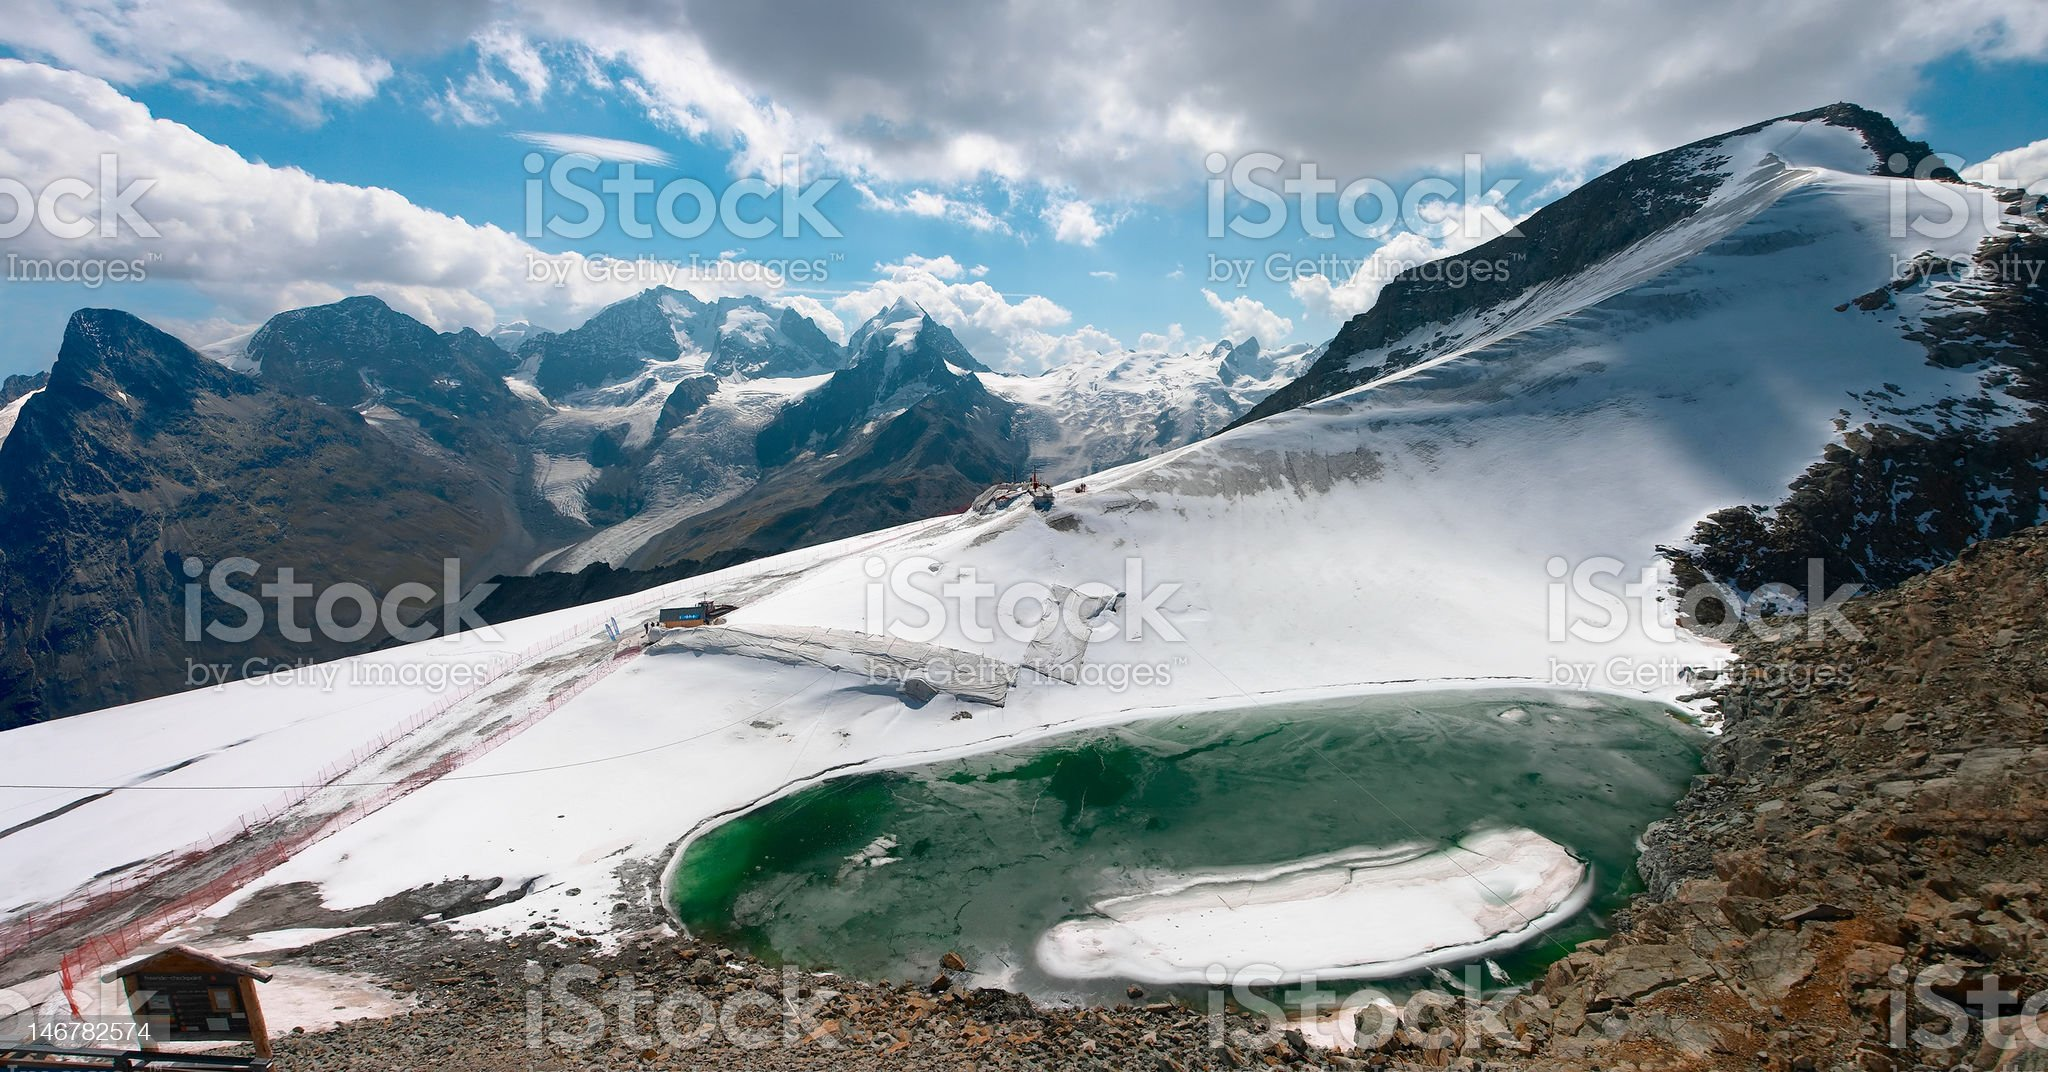 Mountain view from Piz Corvatsch near St. Moritz, Switzerland royalty-free stock photo